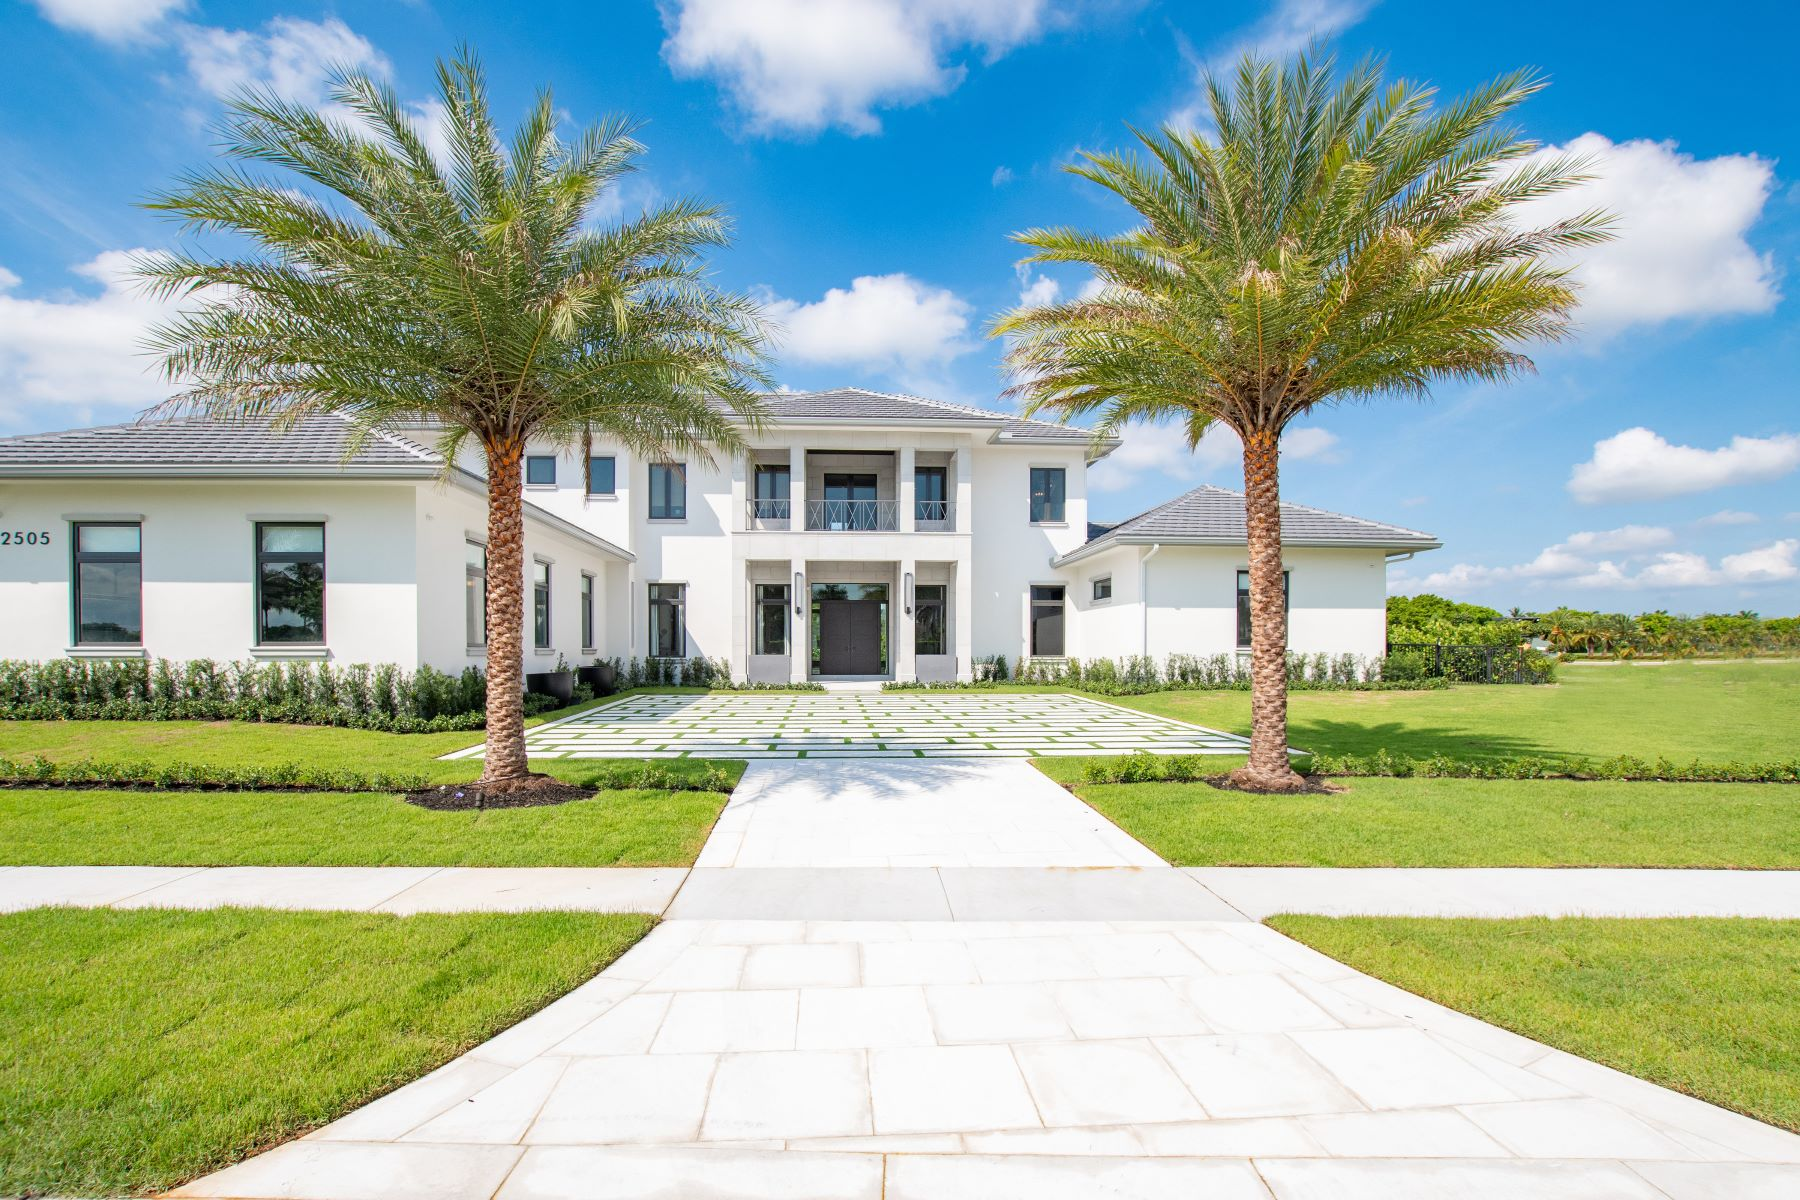 Single Family Homes for Sale at 2505 Cypress Island Court Wellington, Florida 33414 United States